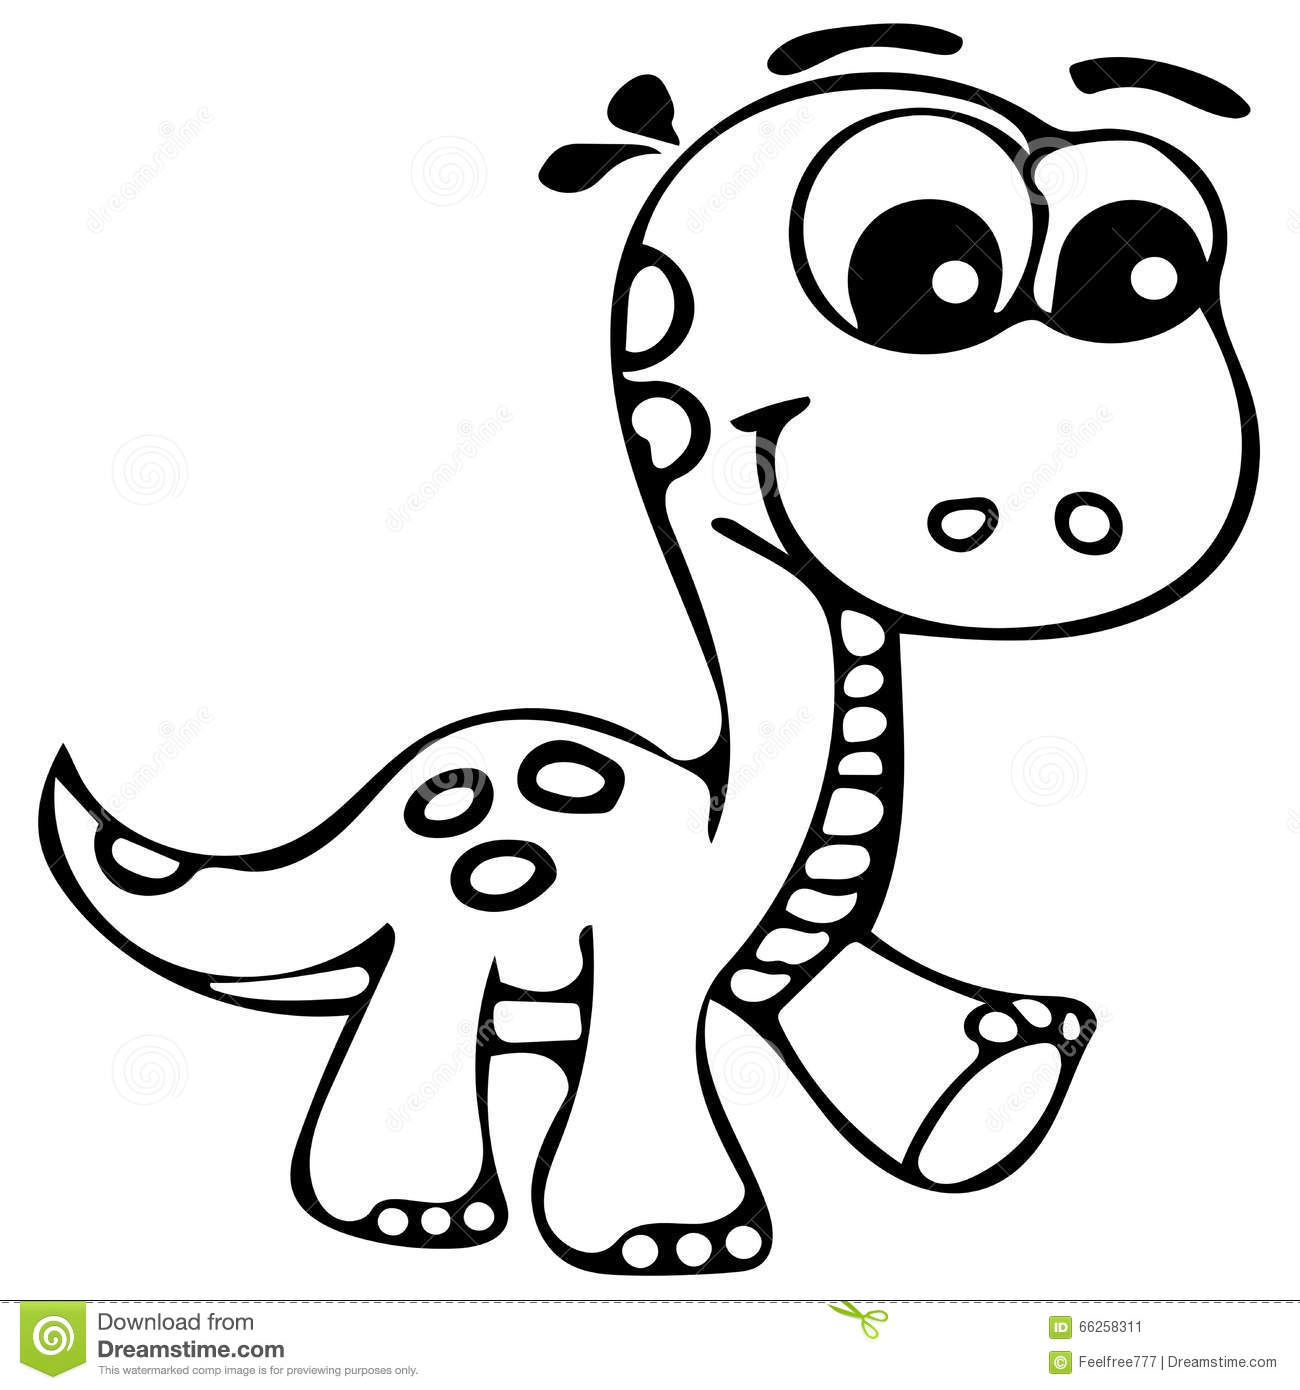 1300x1390 Coloring Pages Coloring Pages Draw A Dinosaur Cute Cartoon Page